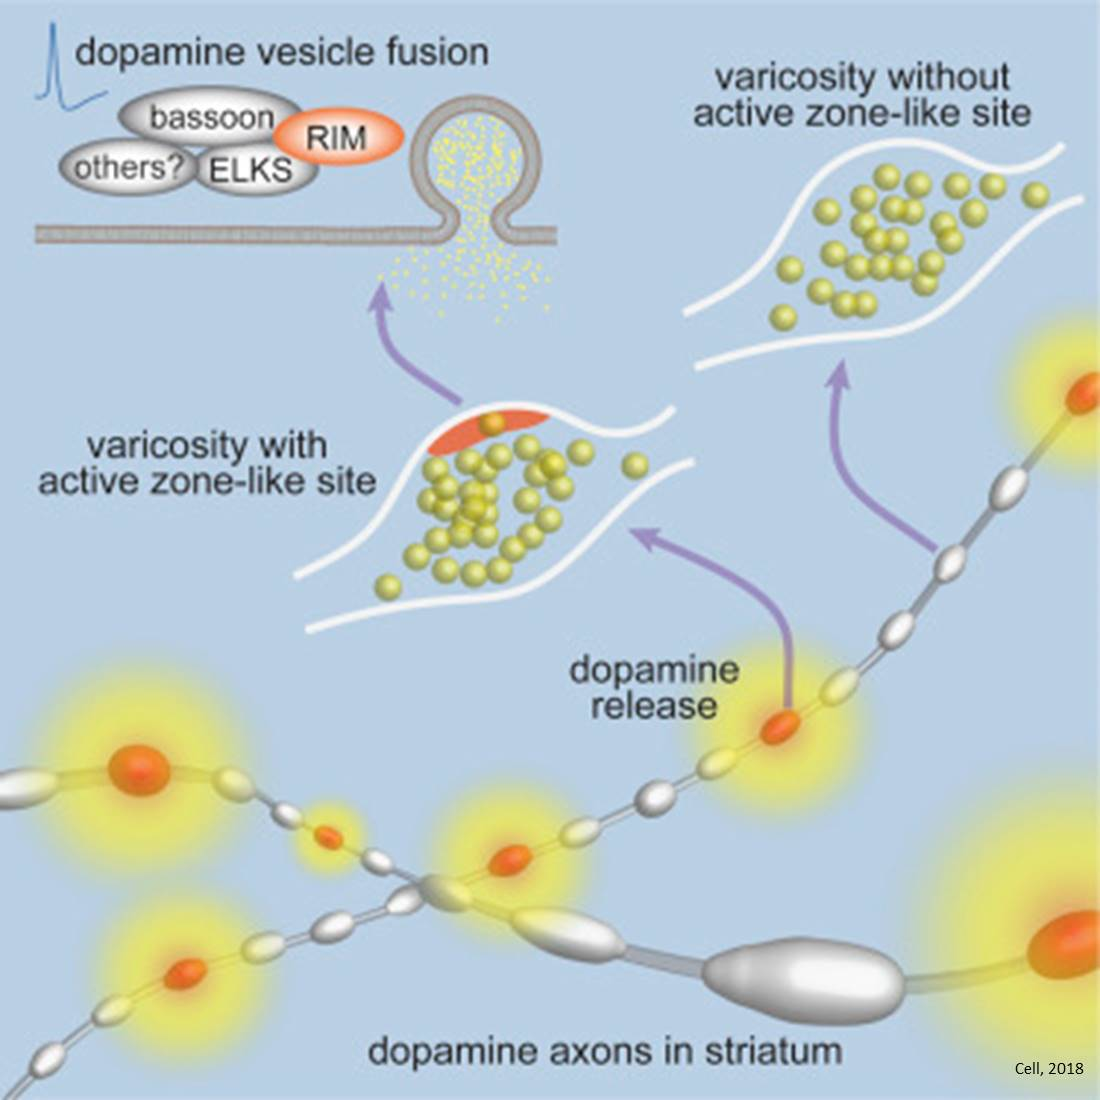 New mechanism for dopamine release